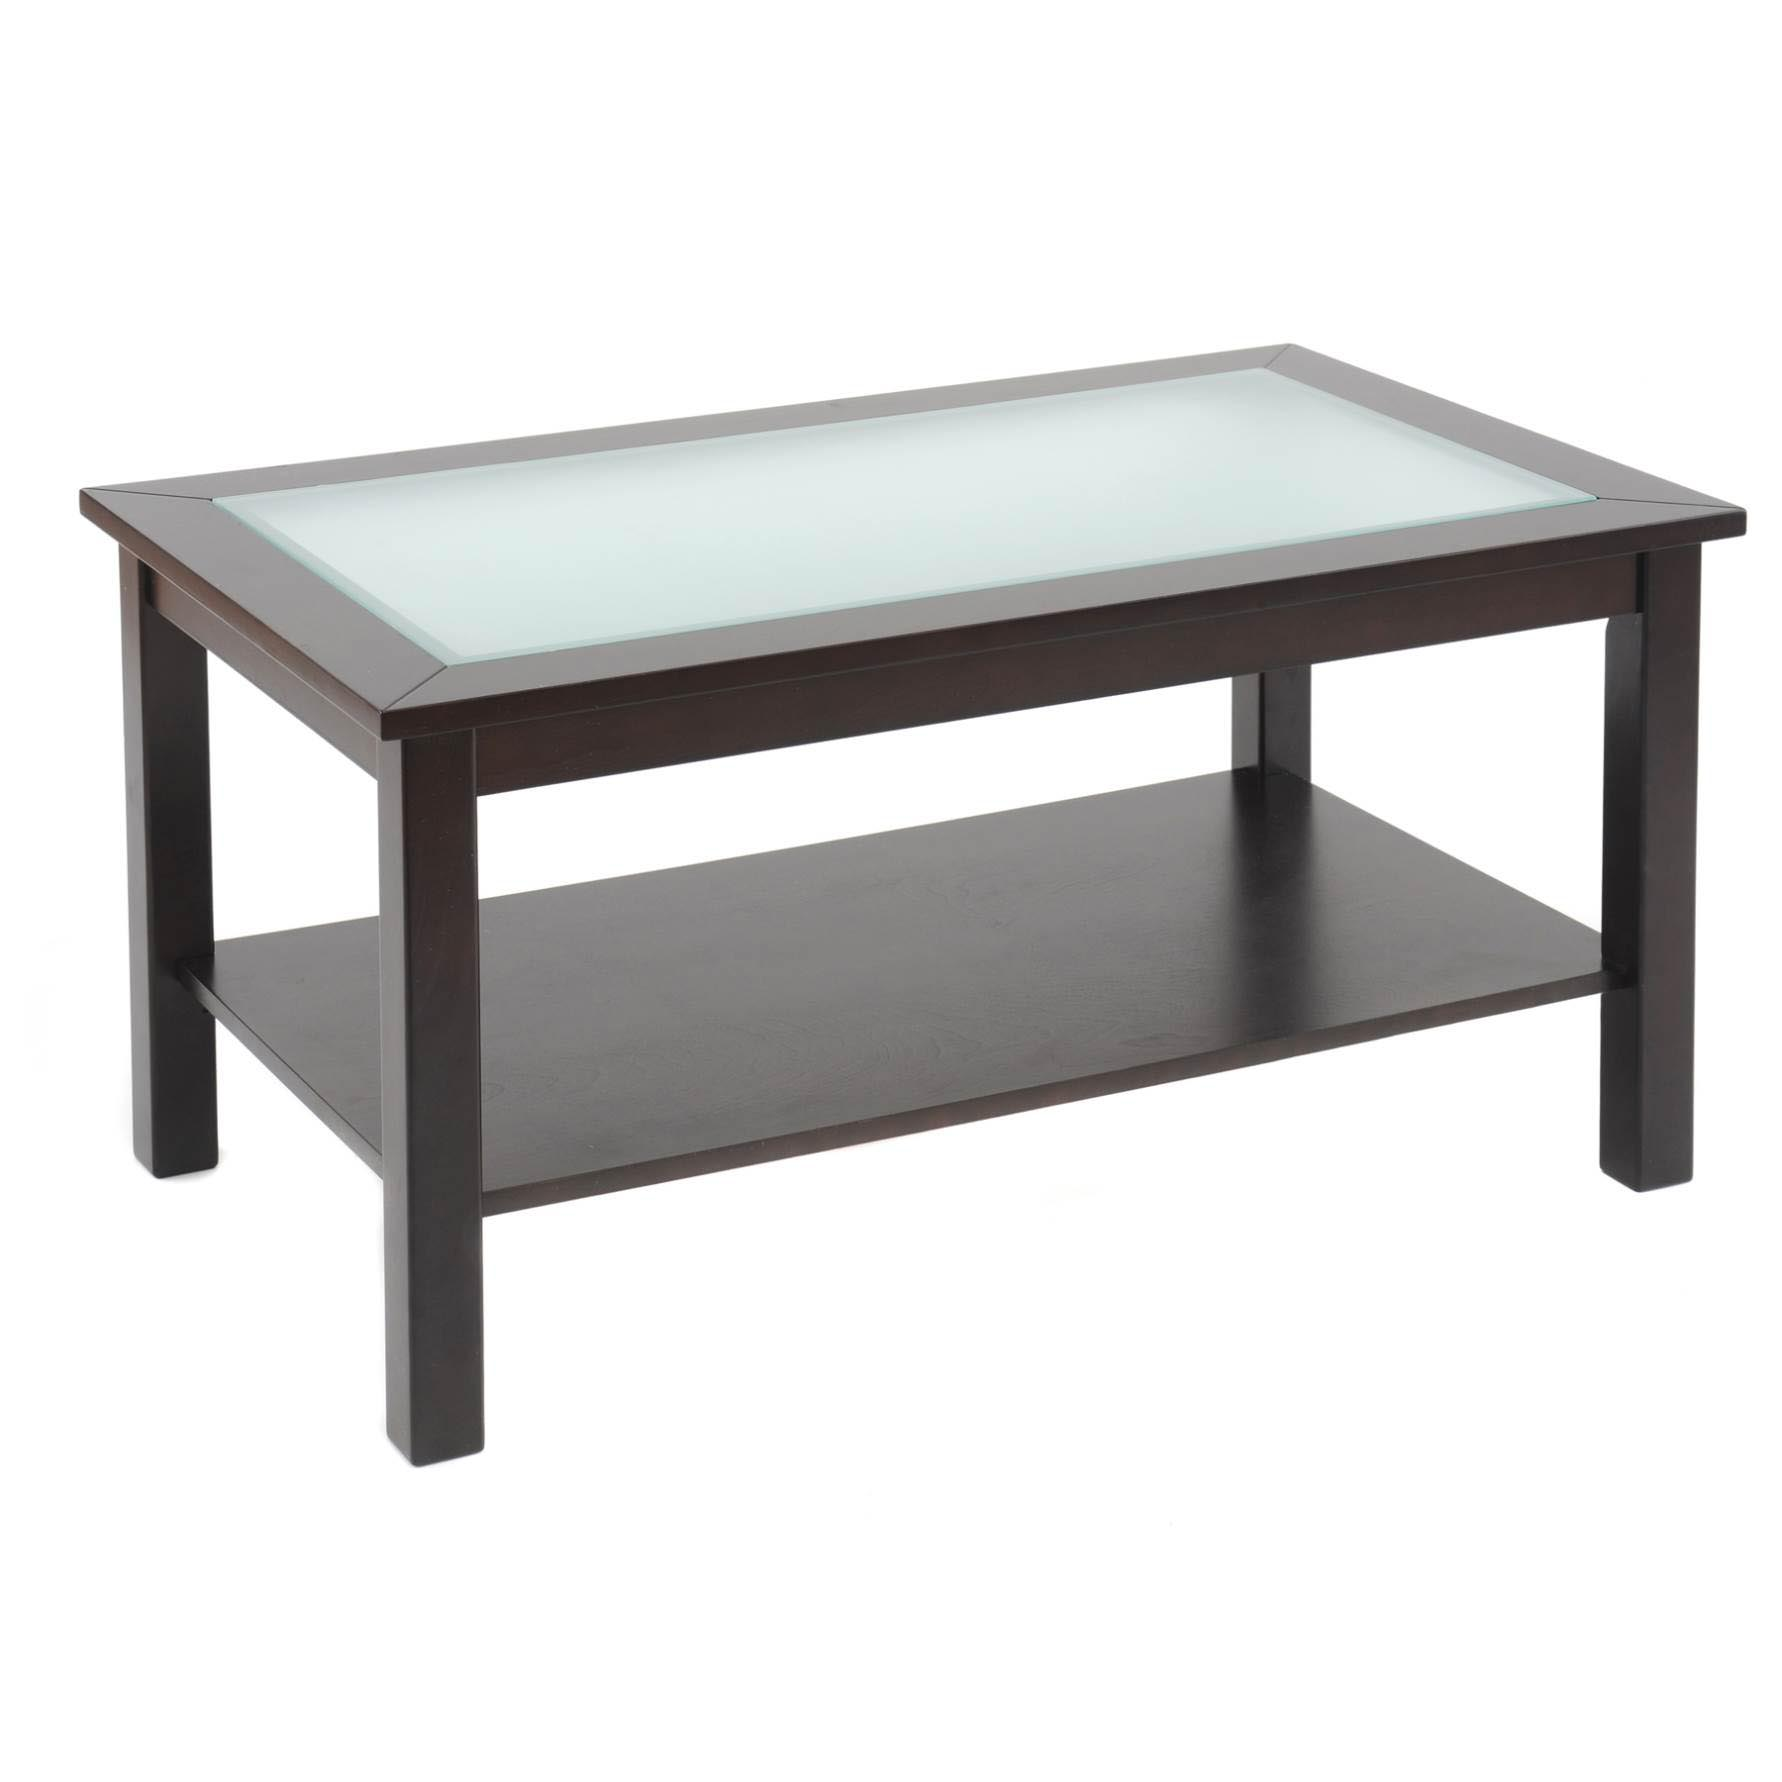 Glass Top Coffee Tables: Glass Display Coffee Table IKEA